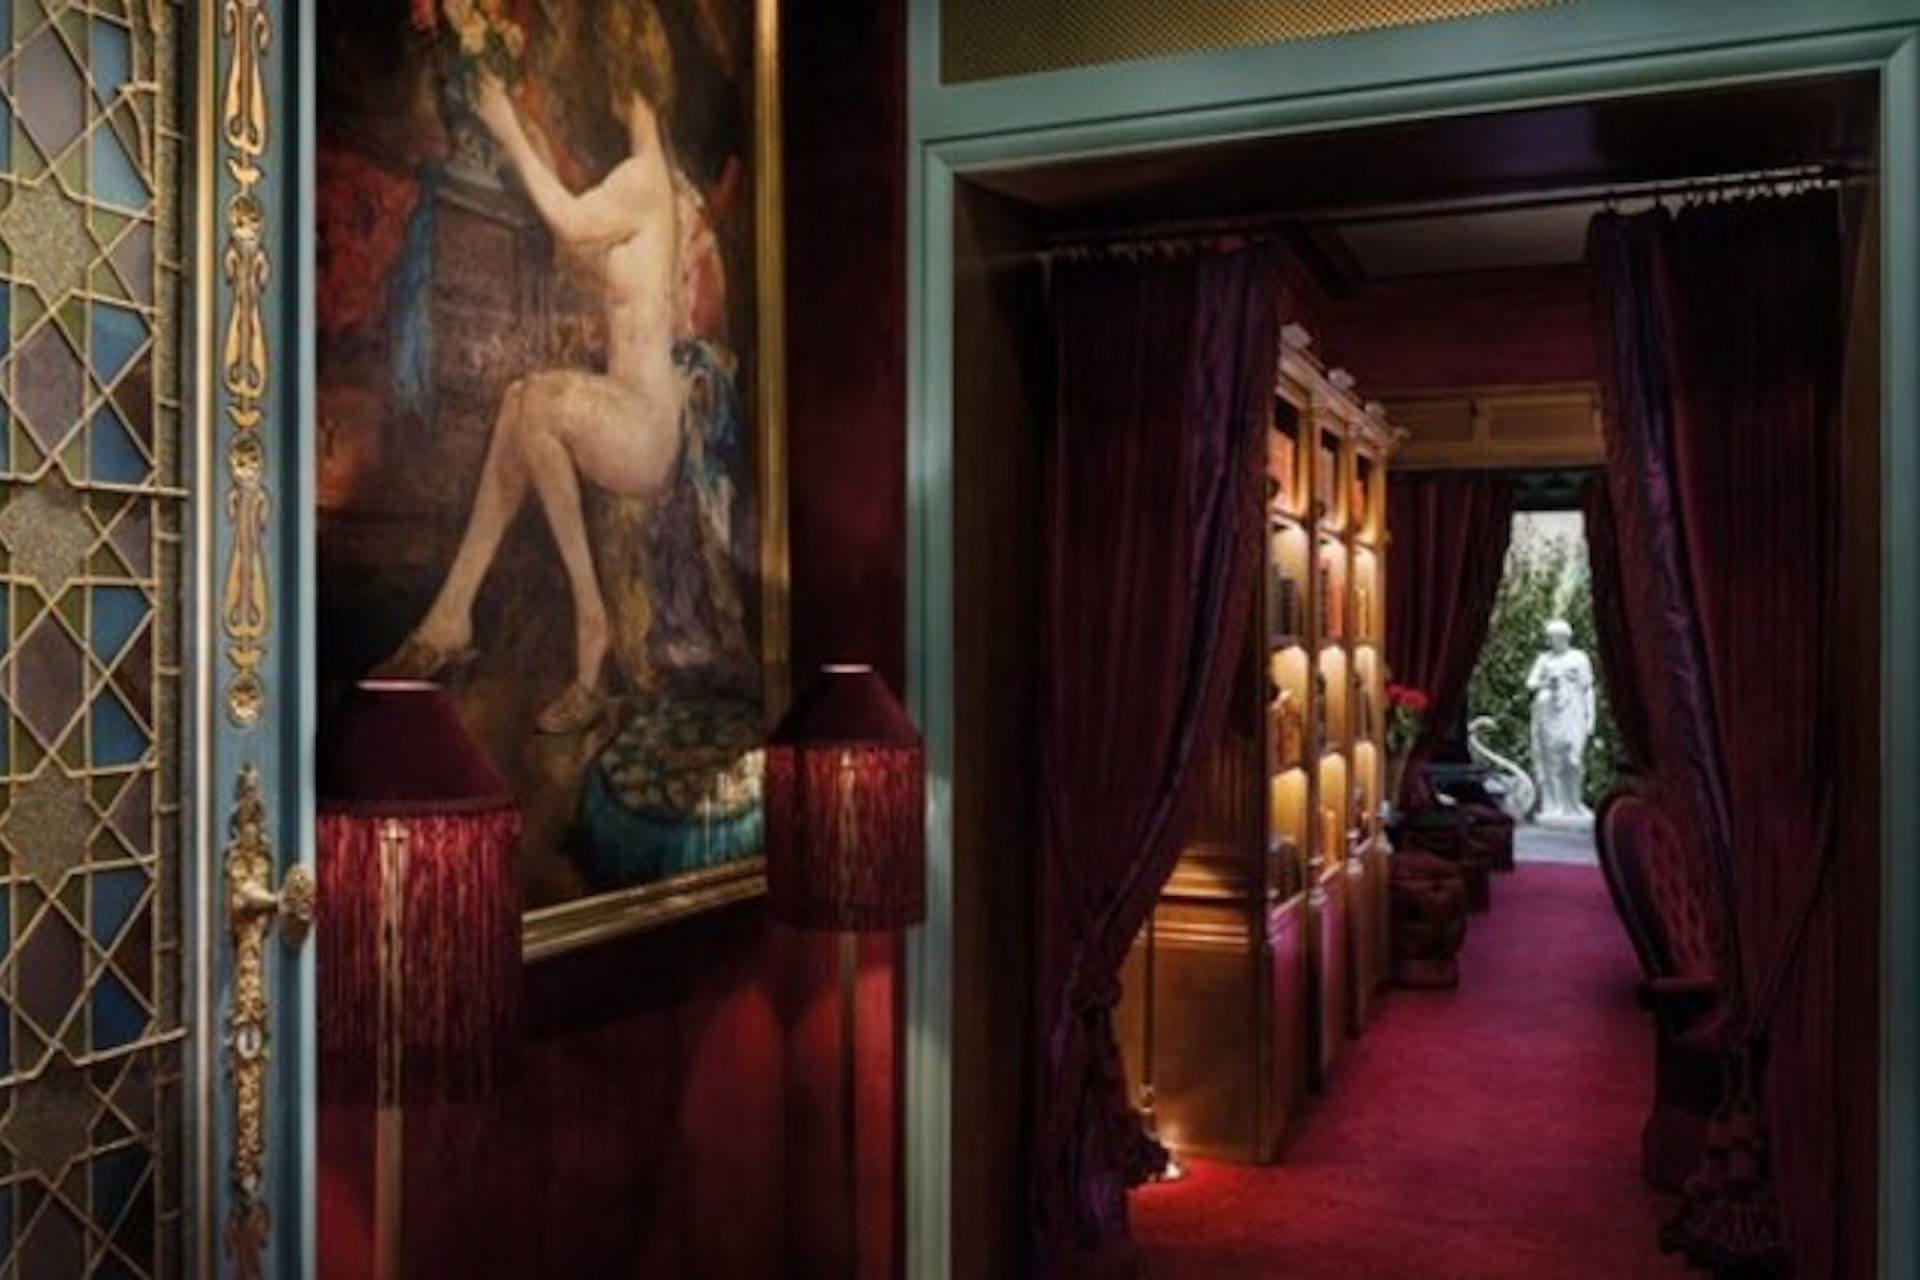 Scandalous Boudoirs and Courtesans: A Unique Paris Tour by Paris Perfect